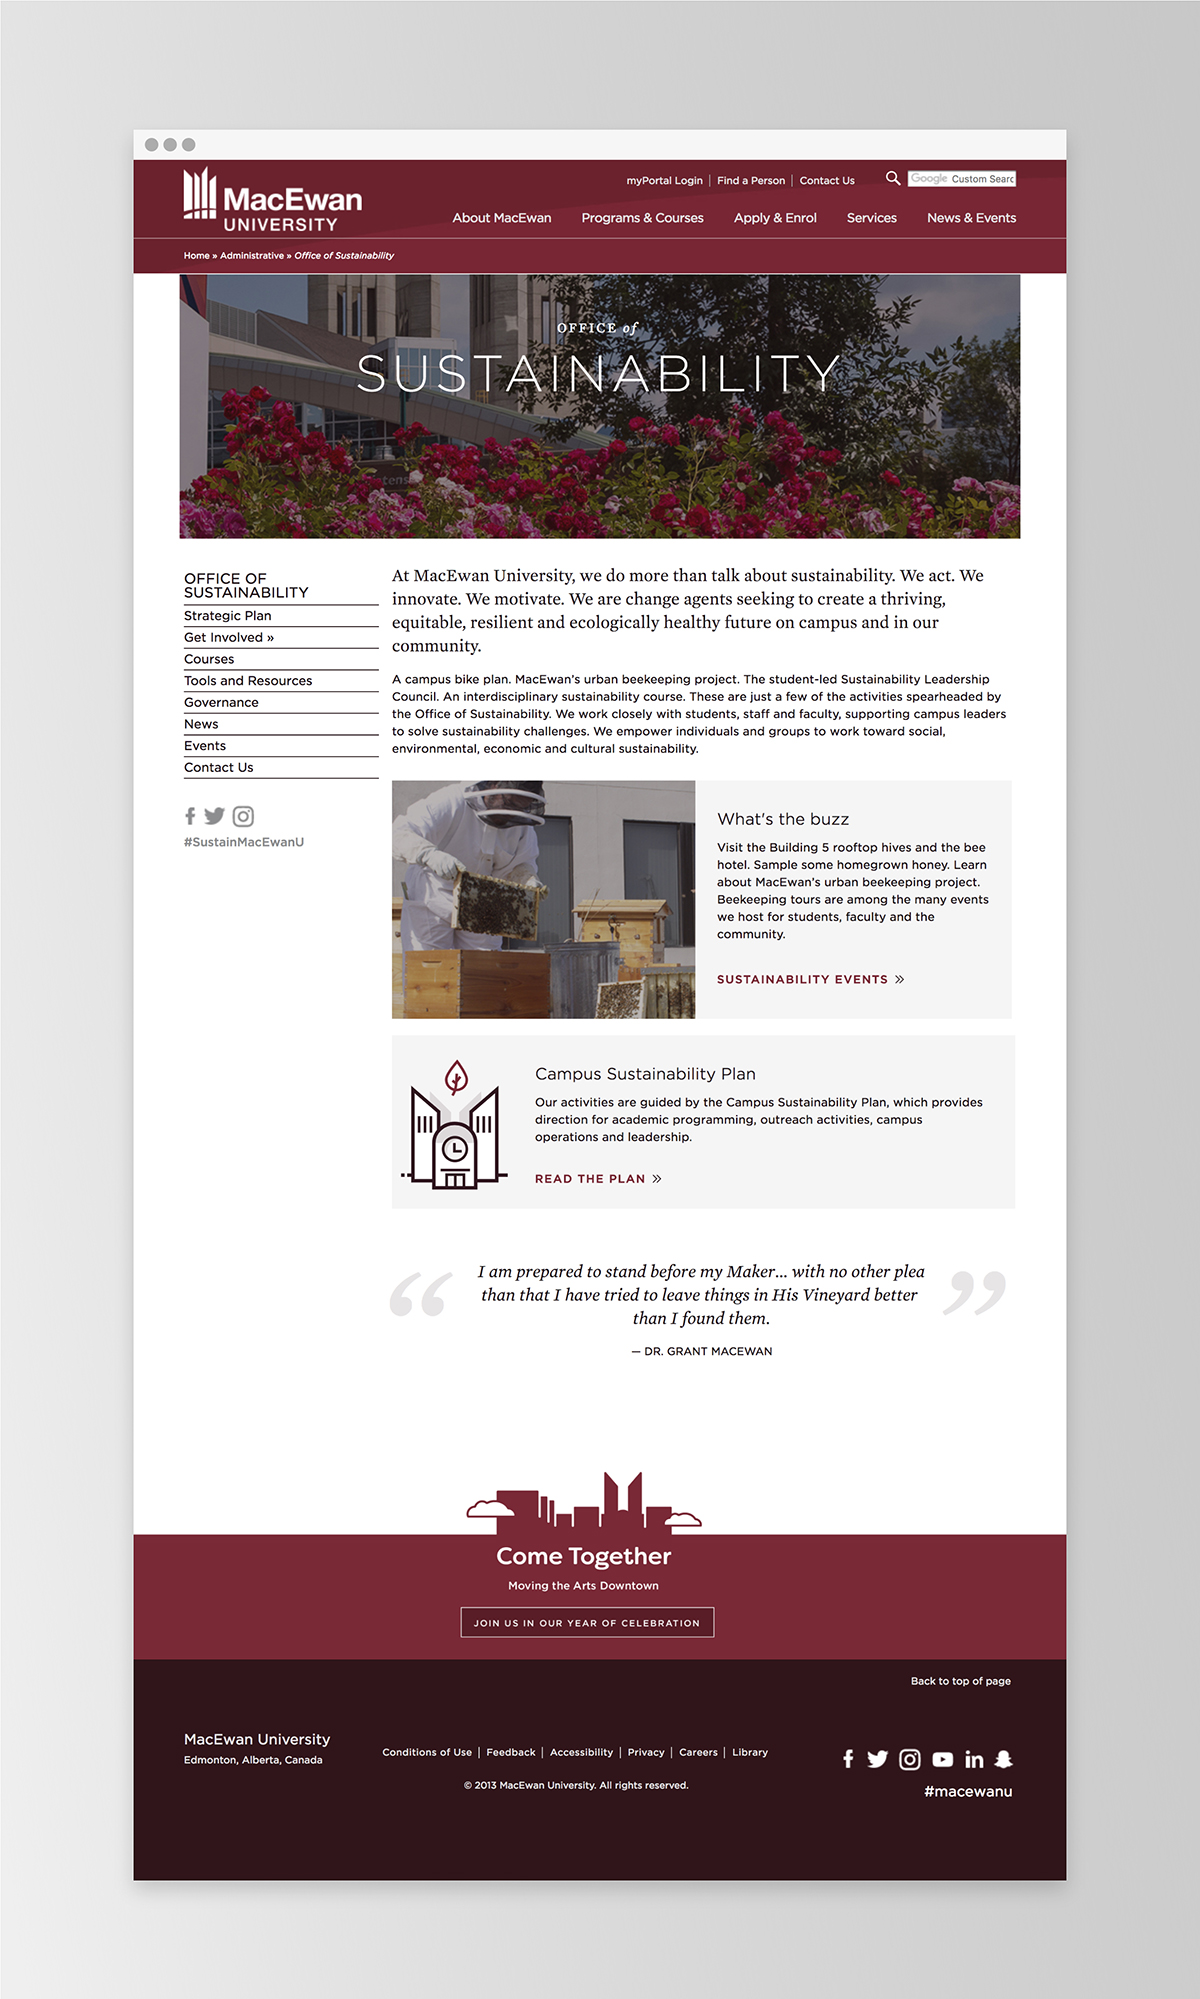 An example of a site using the new template design   MacEwan.ca/Sustainability